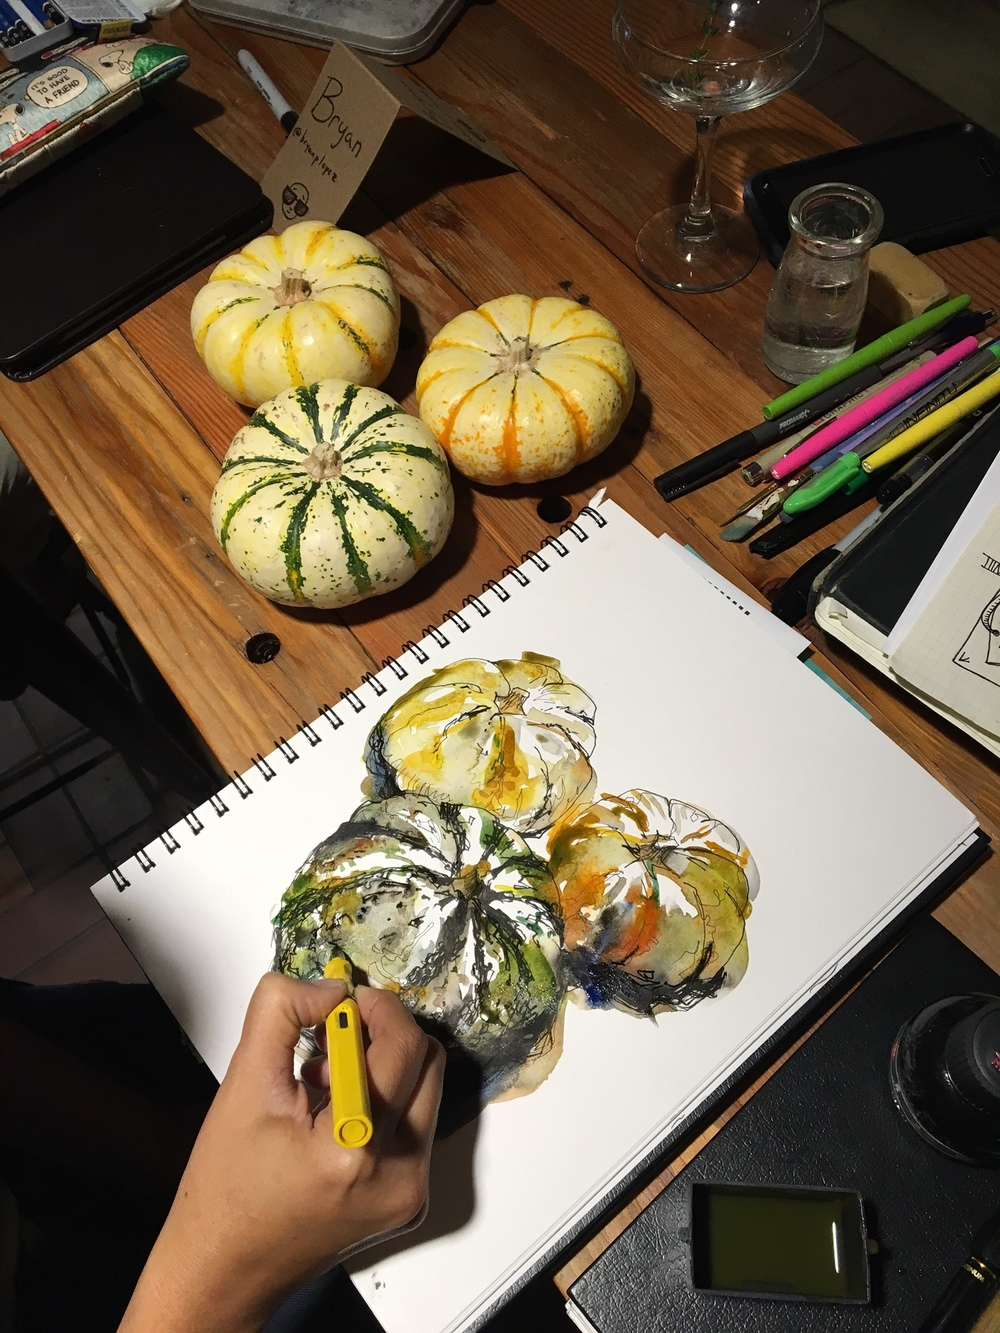 Suhita Shirodkar's pumpkins. Her sketches are always so loose, yet representative.